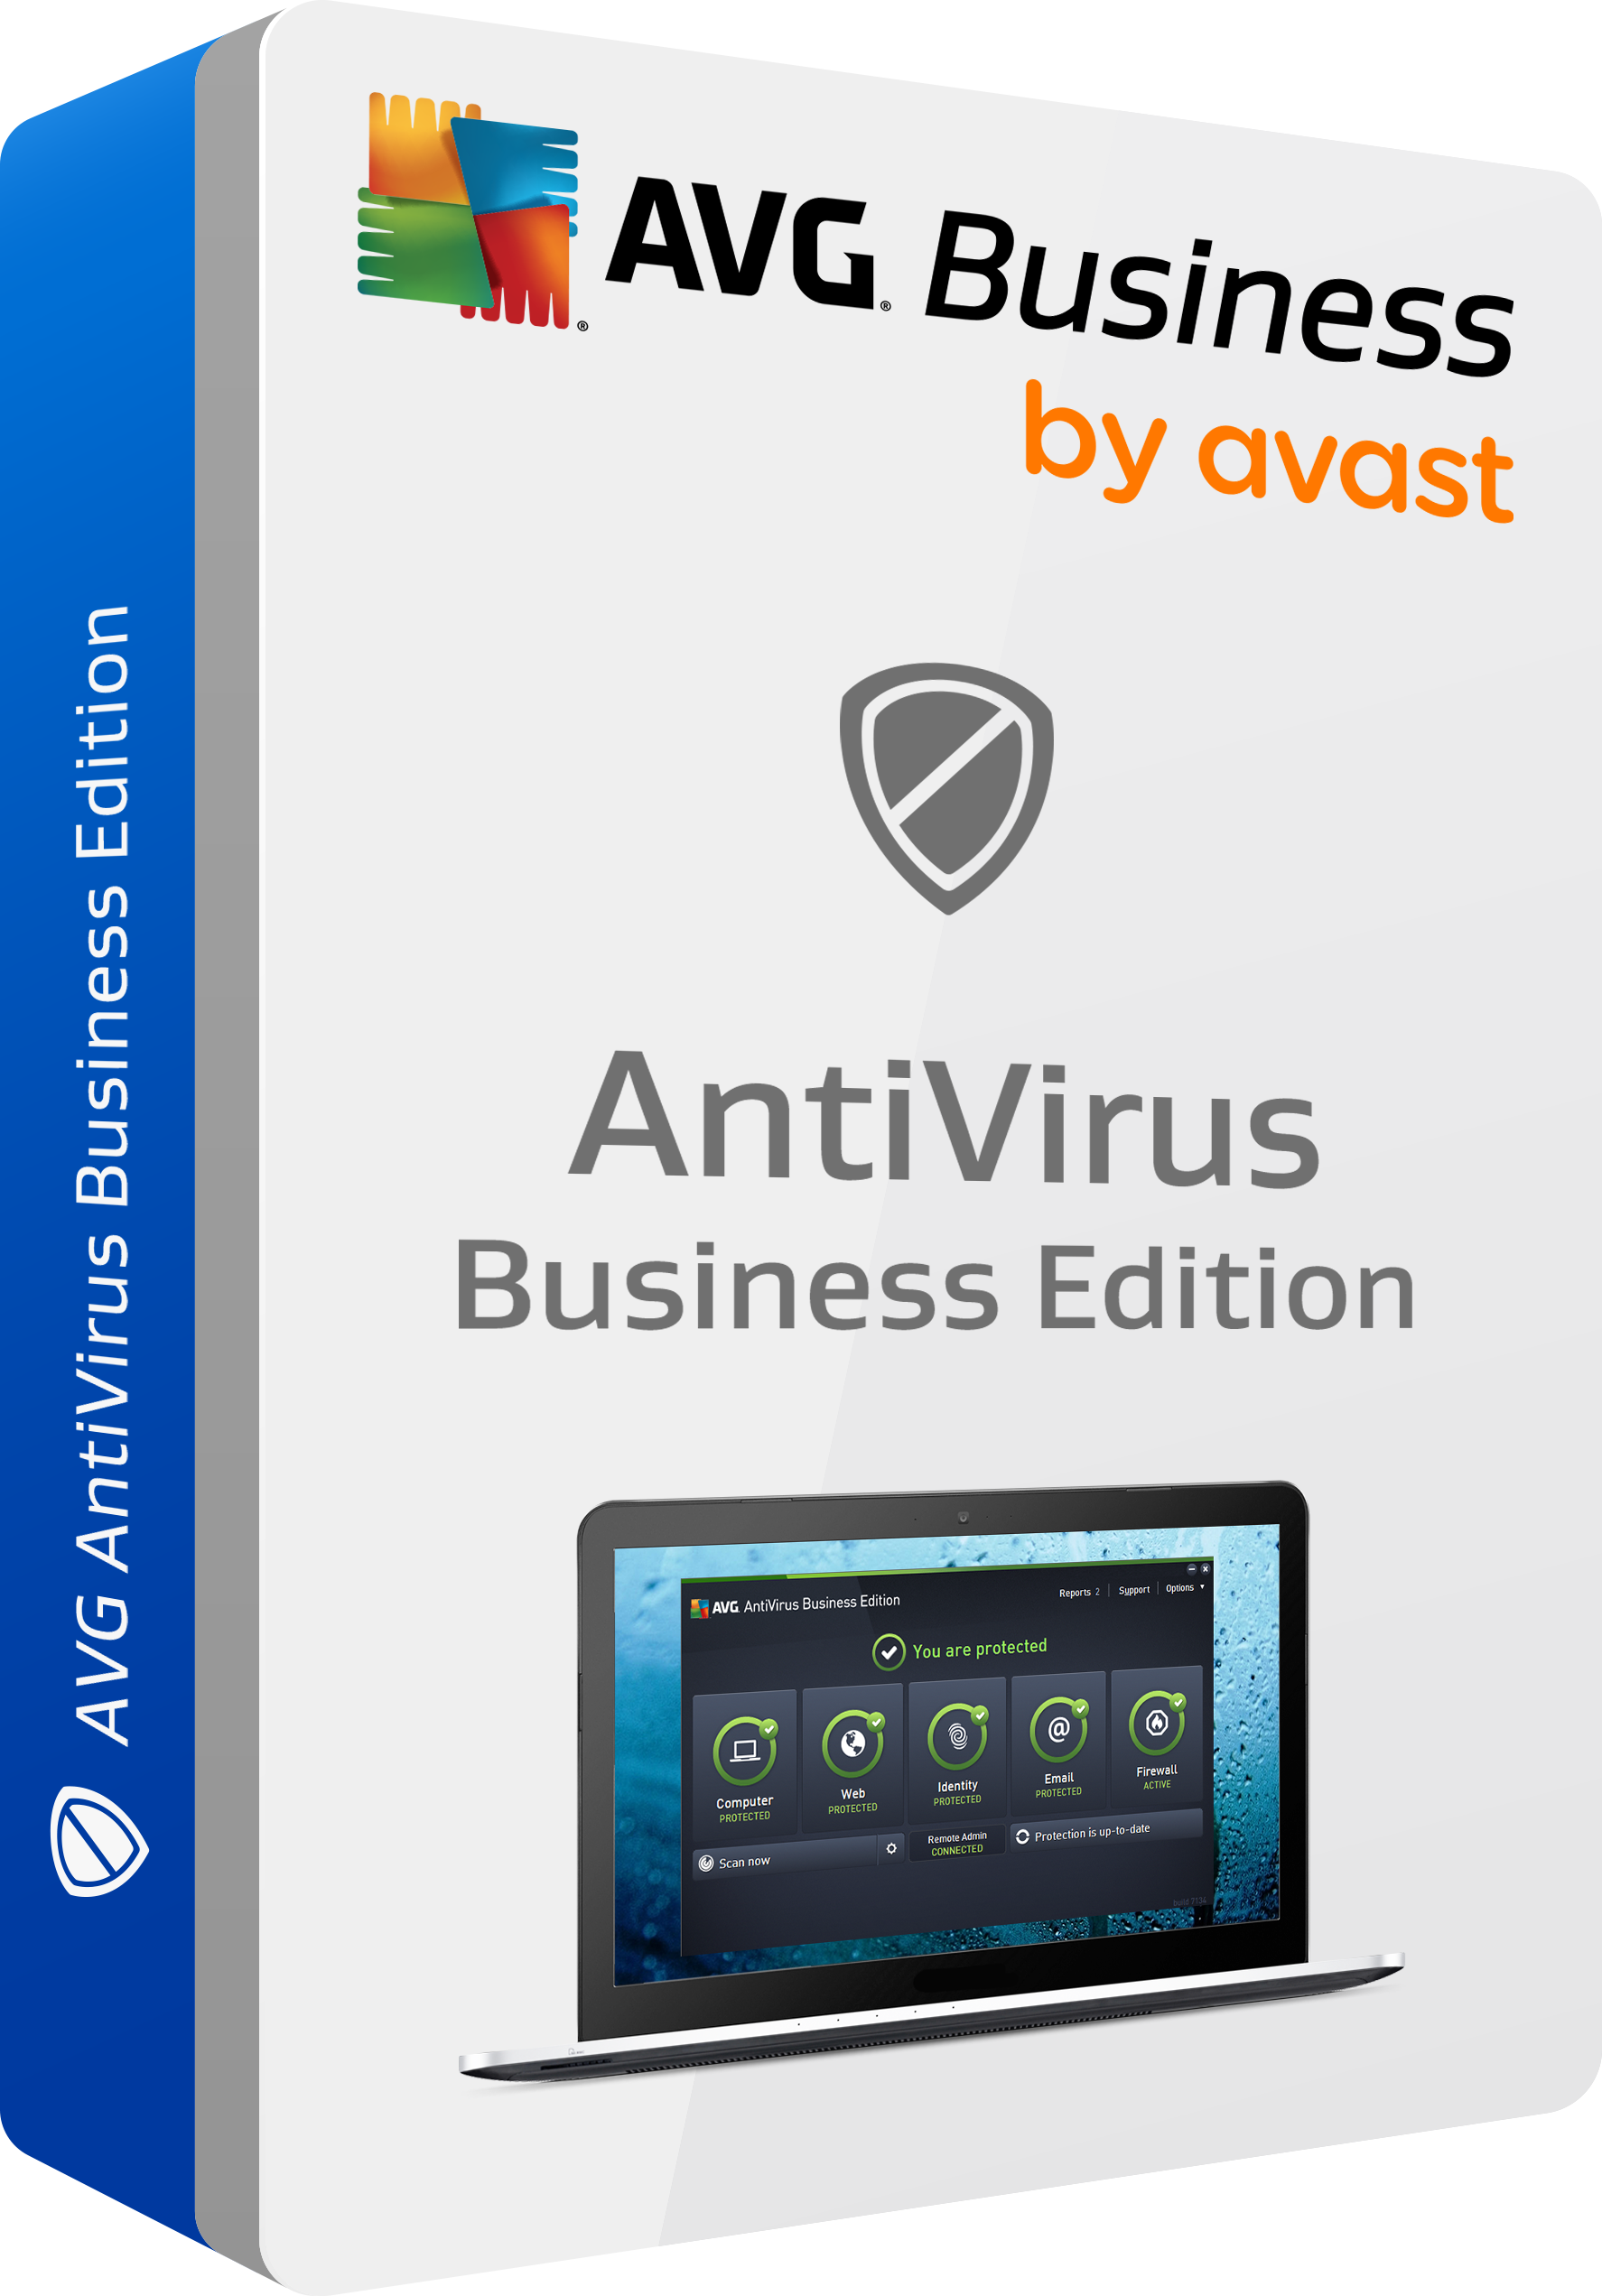 AVG Antivirus Business Edition, 1 Year License